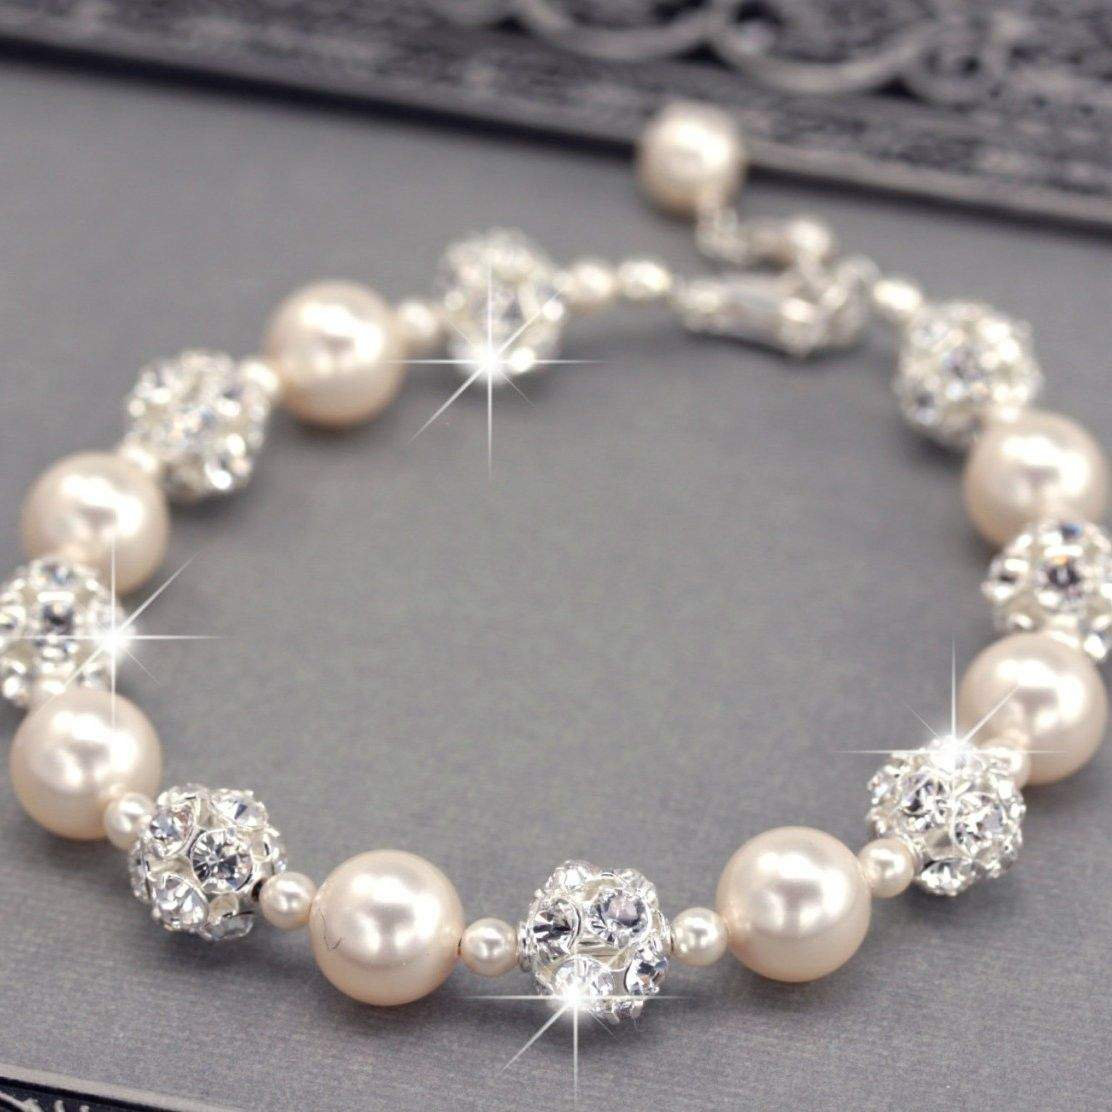 Swarovski Bracelet, combines my love of pearls and sparkle perfectly!